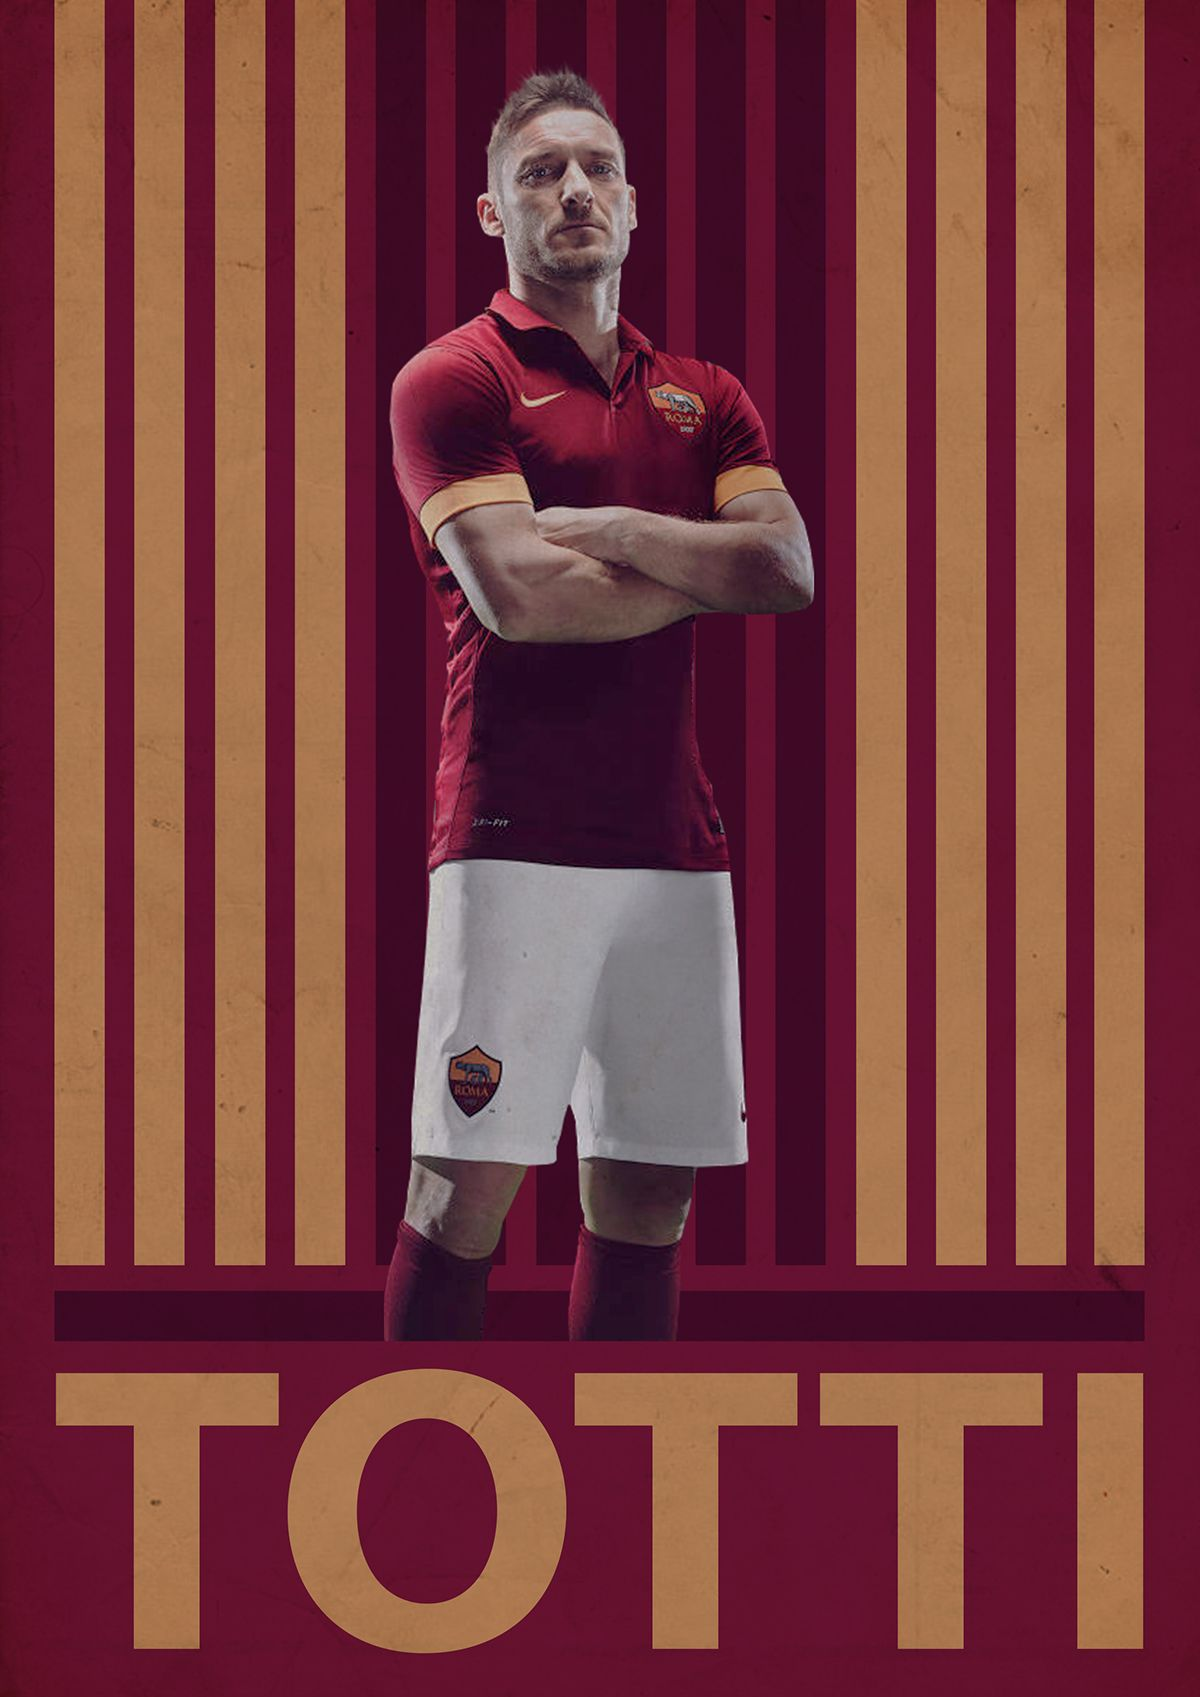 Football Posters on Behance